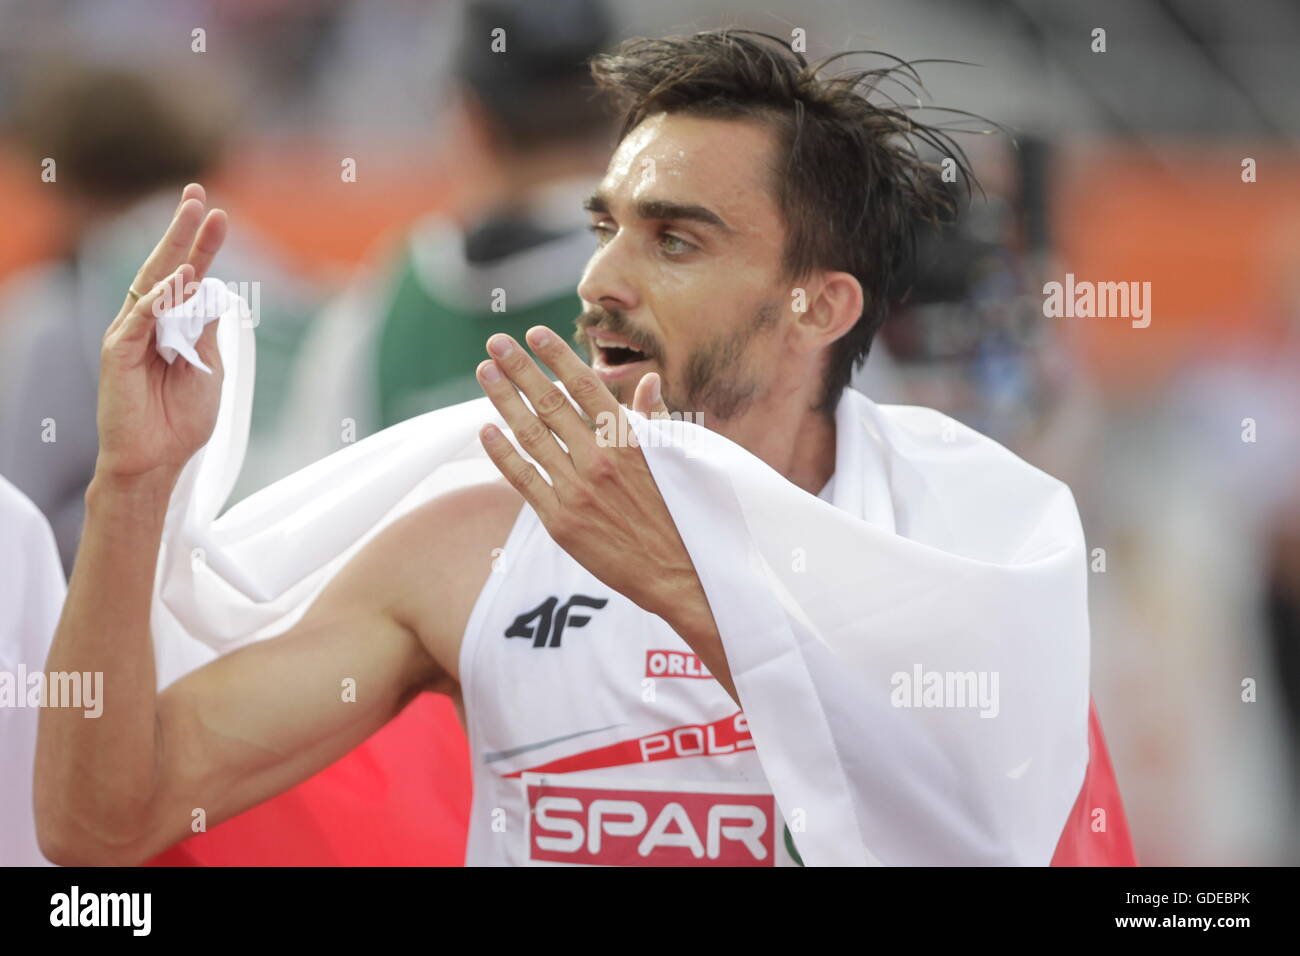 Amsterdam, Netherlands July 10, 2016 Adam Kszczot europe champion in the 800m in Amsterdam - Stock Image